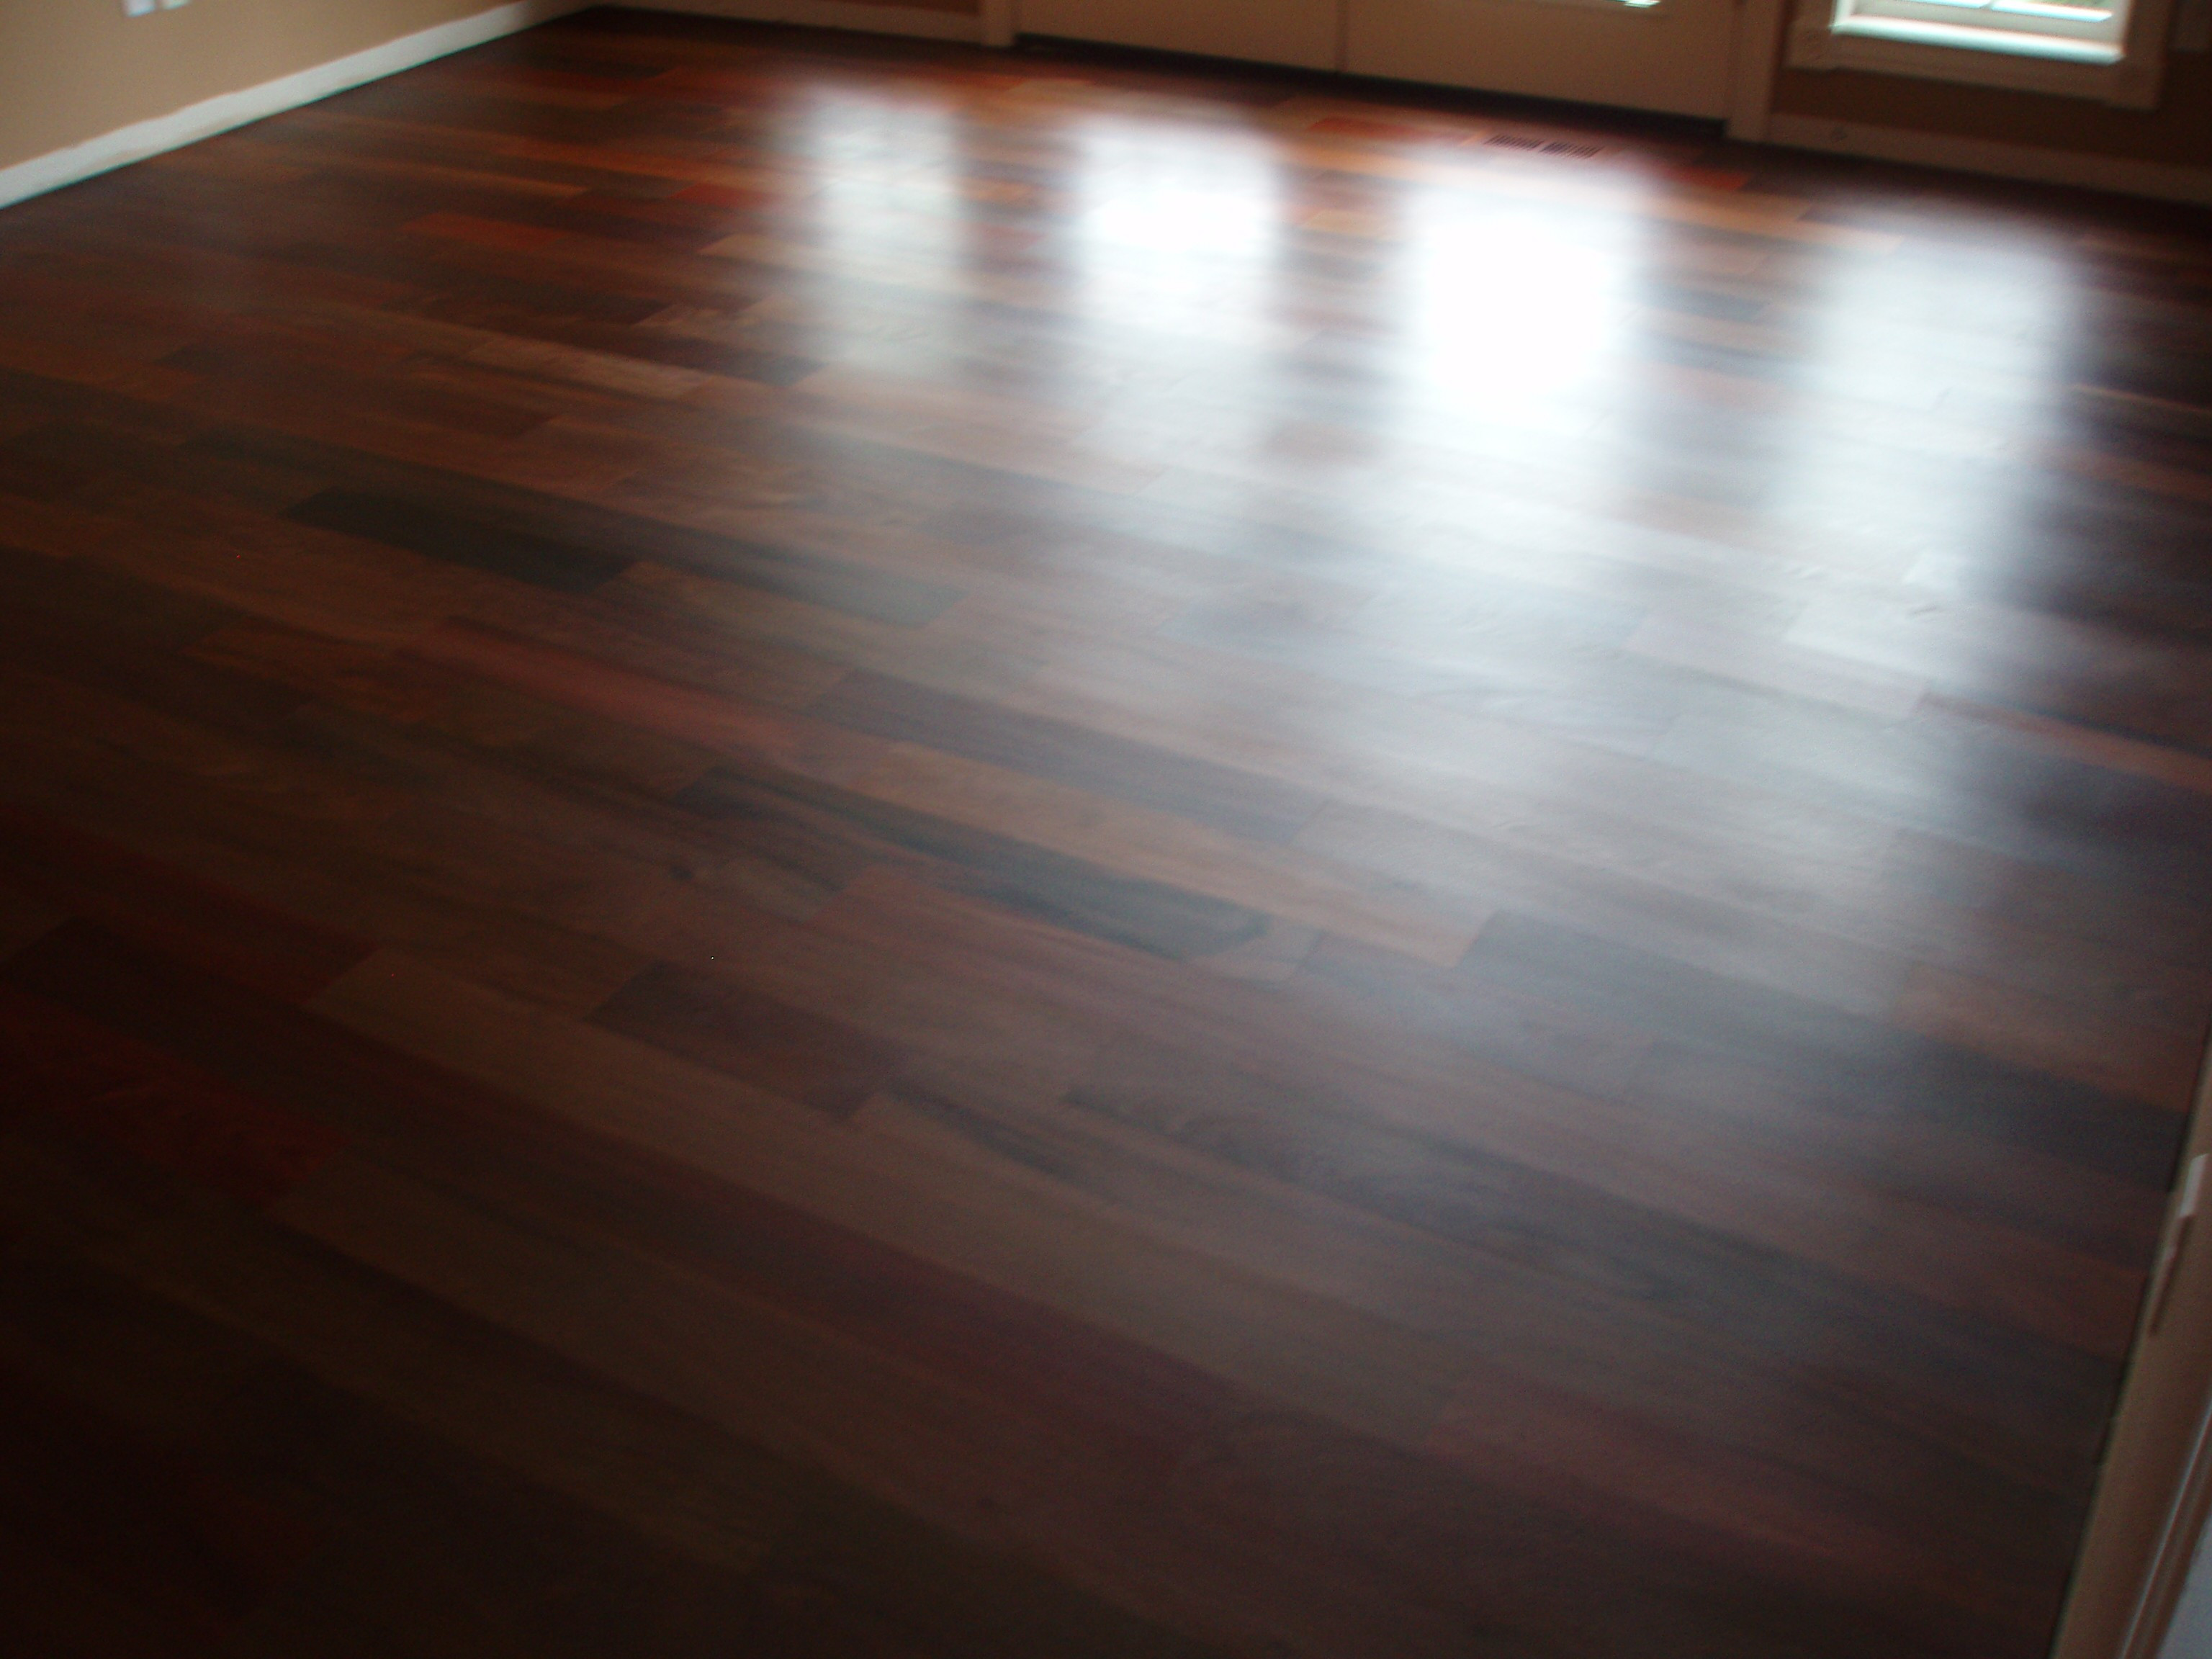 hardwood floor installers dallas tx of 17 awesome cali bamboo flooring reviews photos dizpos com pertaining to cali bamboo flooring reviews awesome bellawood hardwood flooring warranty flooring designs photograph of 17 awesome cali